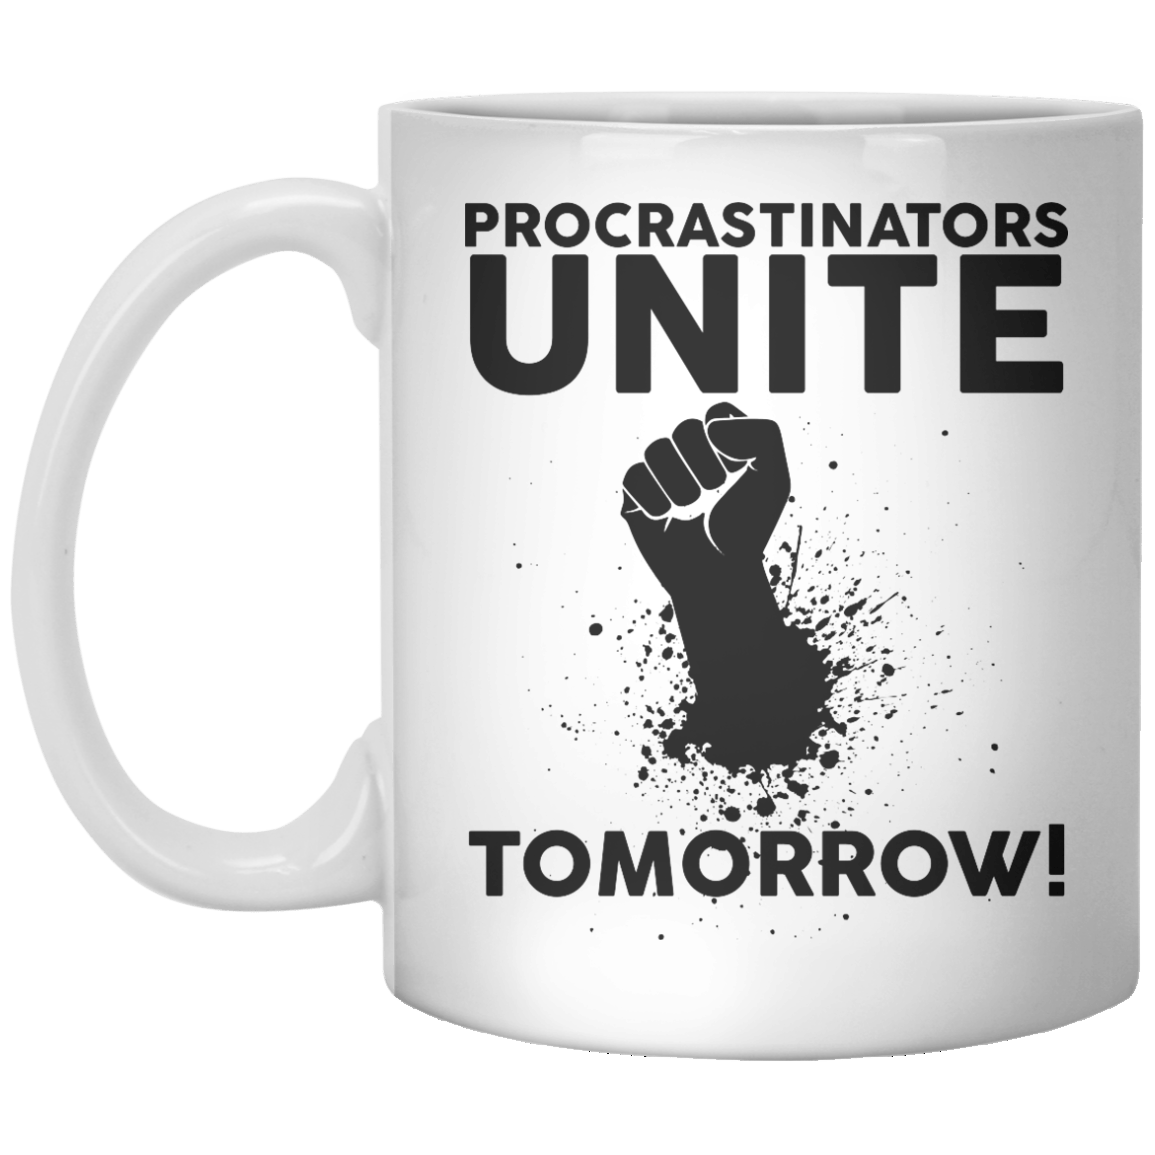 Procrastinators Unite Tomorrow - Shirtoopia